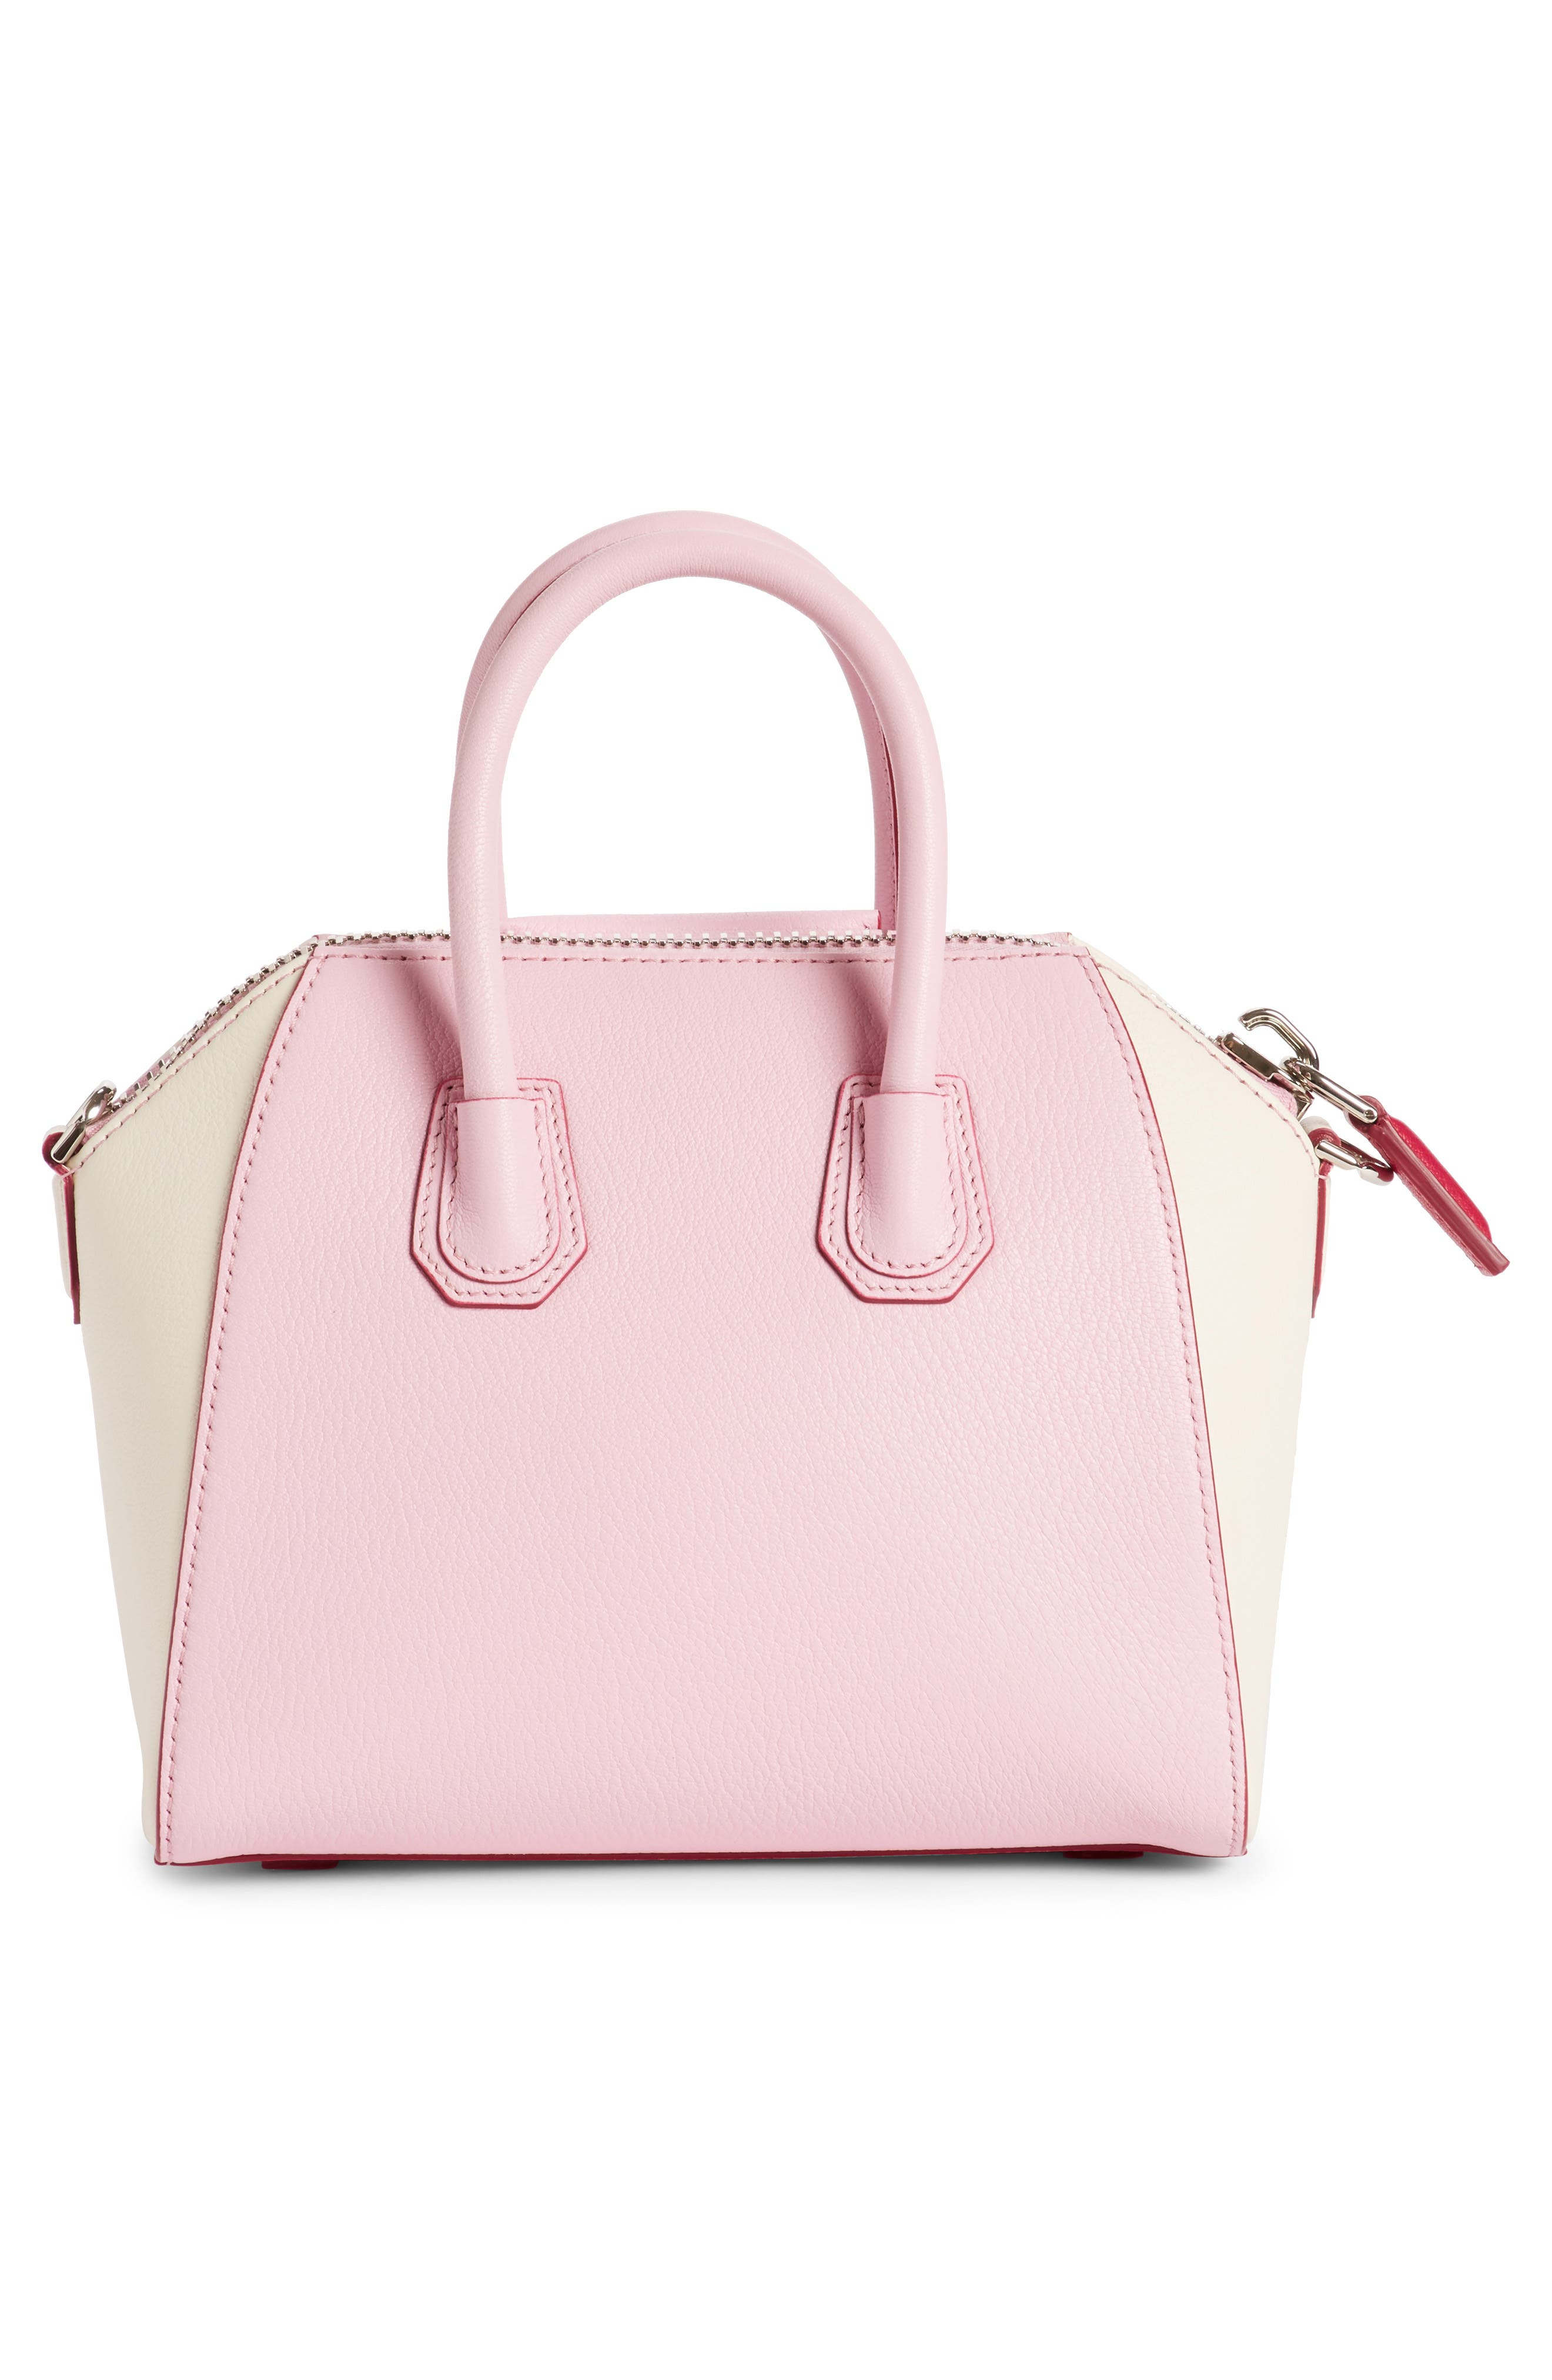 Mini Antigona Bicolor Sugar Leather Satchel,                             Alternate thumbnail 4, color,